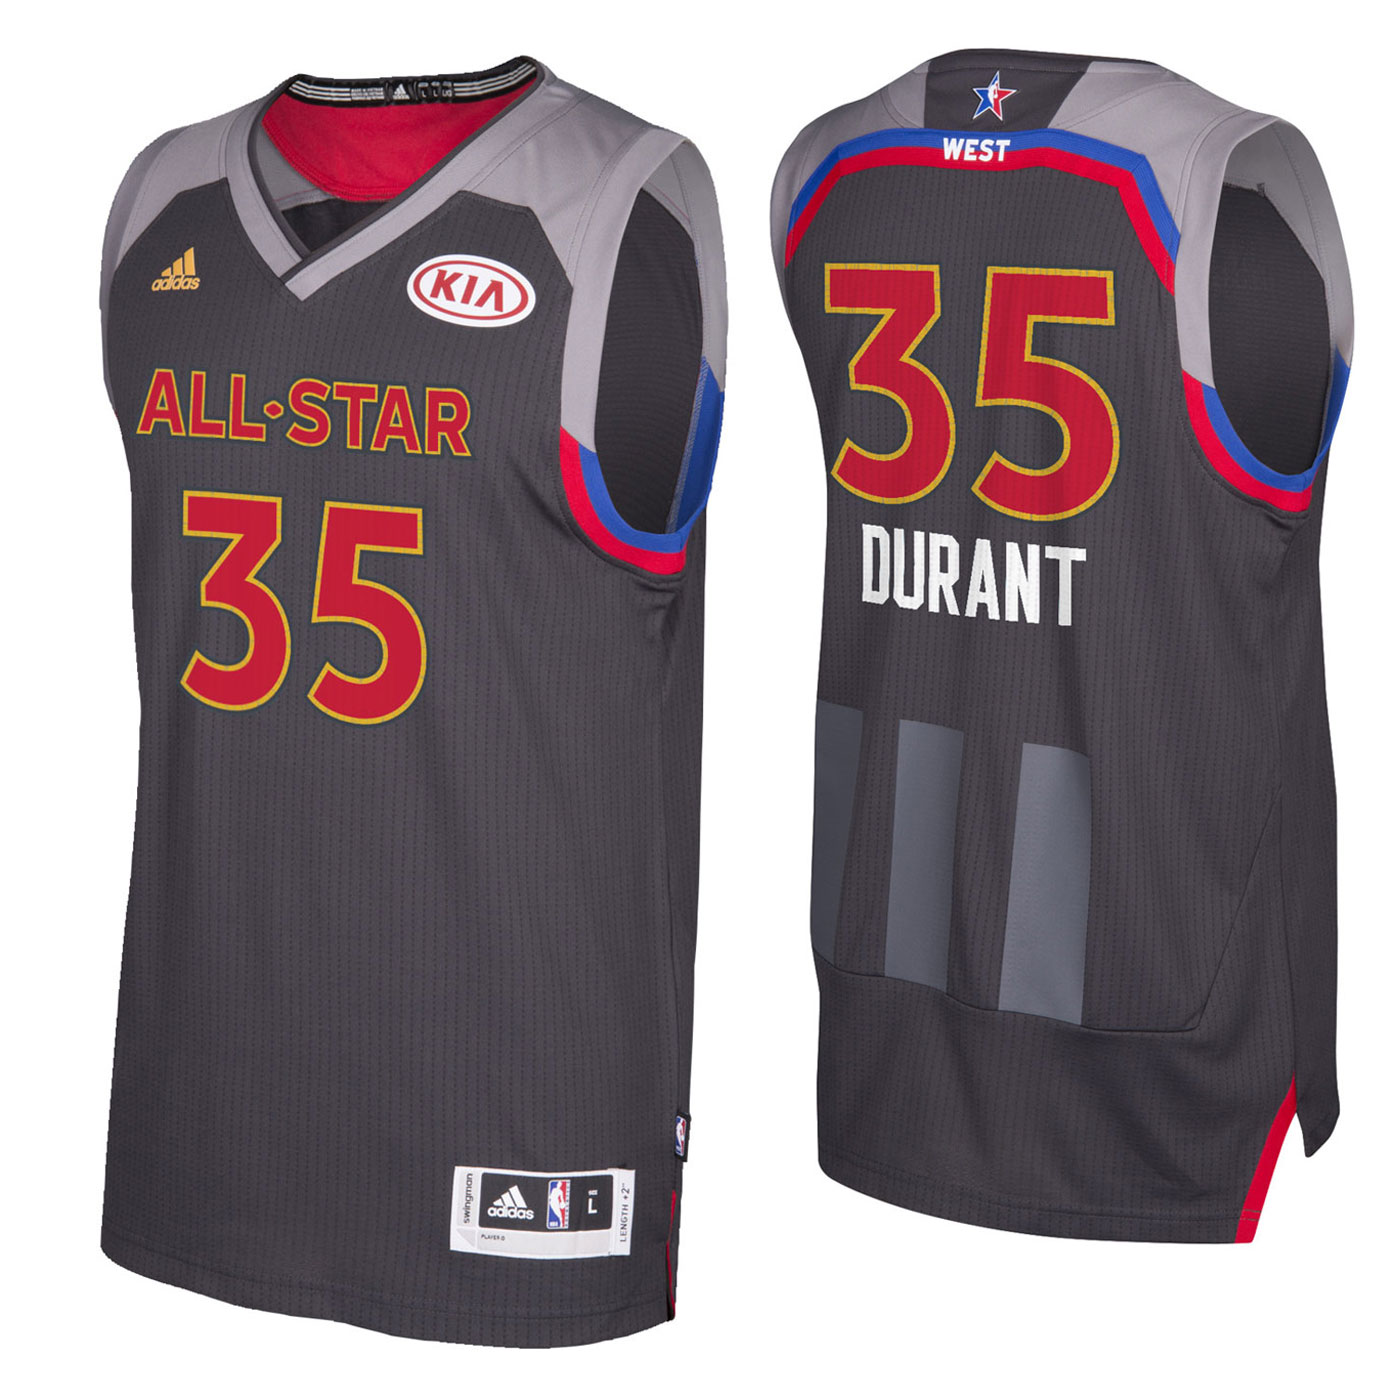 on sale ed579 236fb All Star NBA Western Kevin Durant 35 Black Jersey